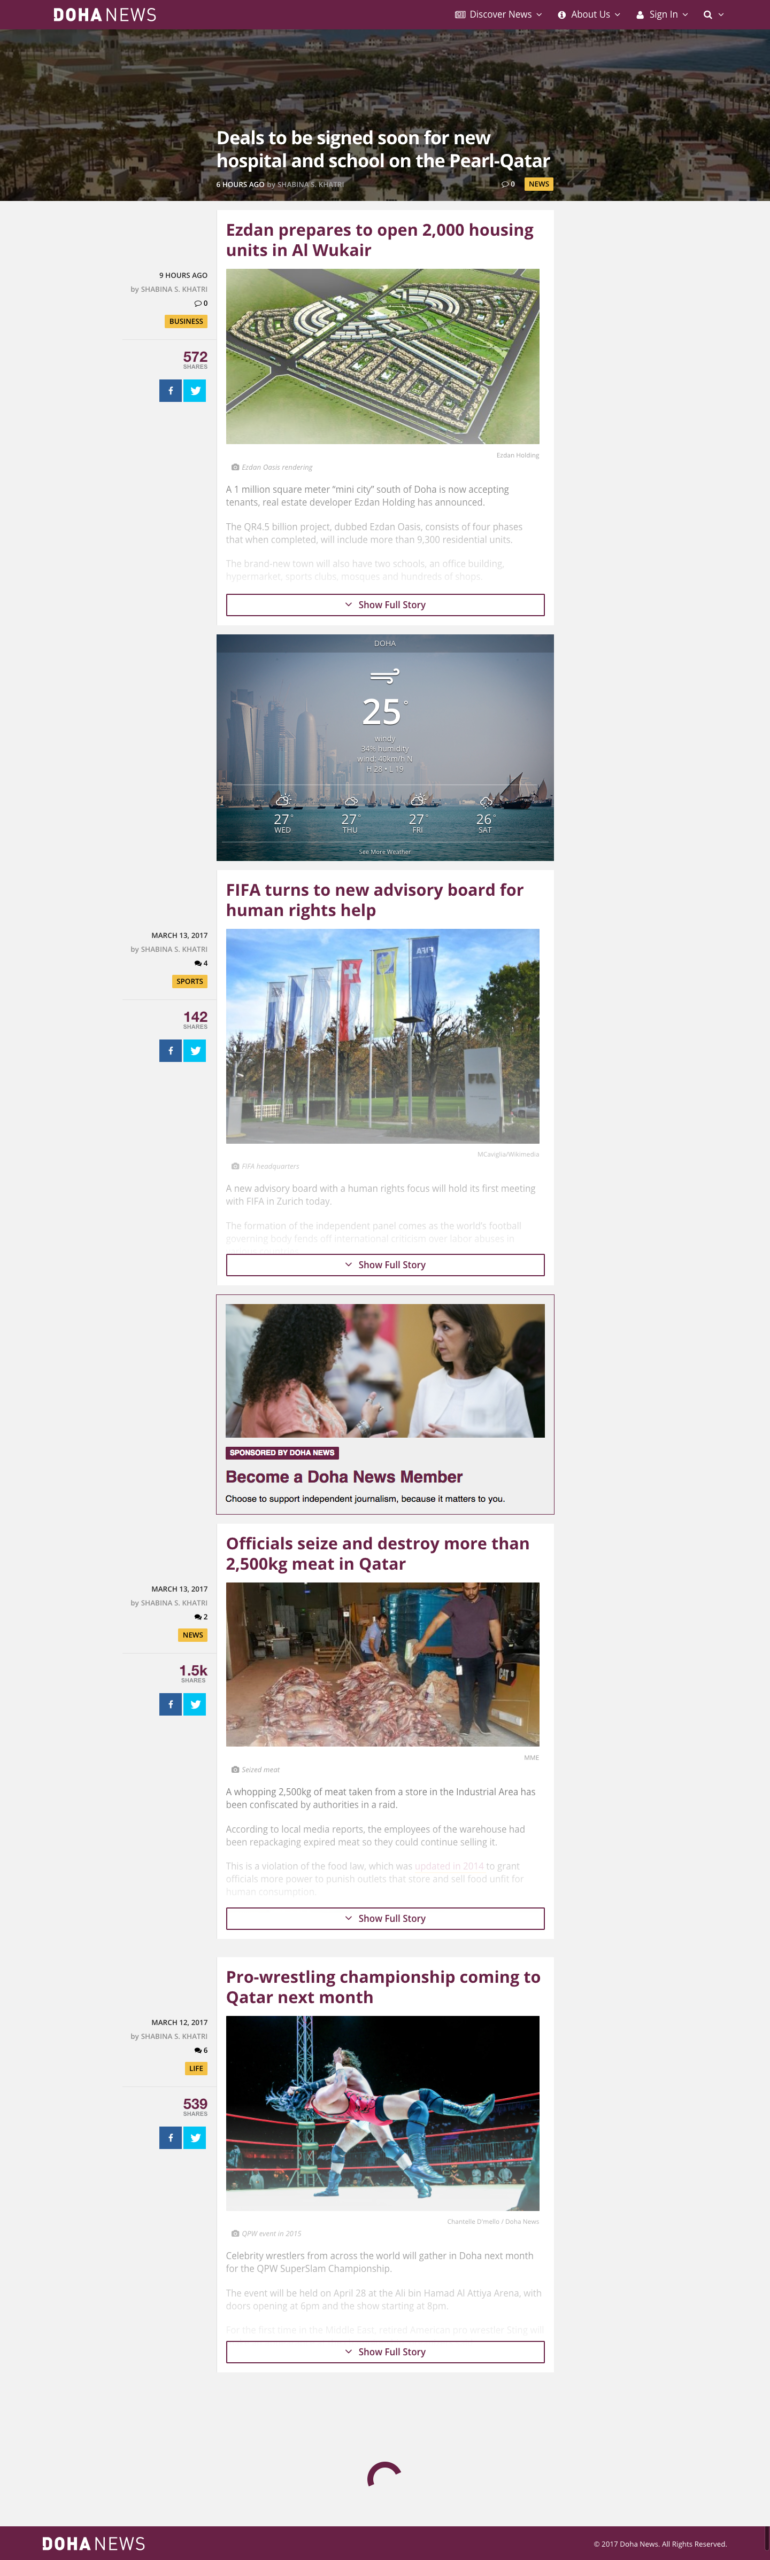 Doha News - Homepage